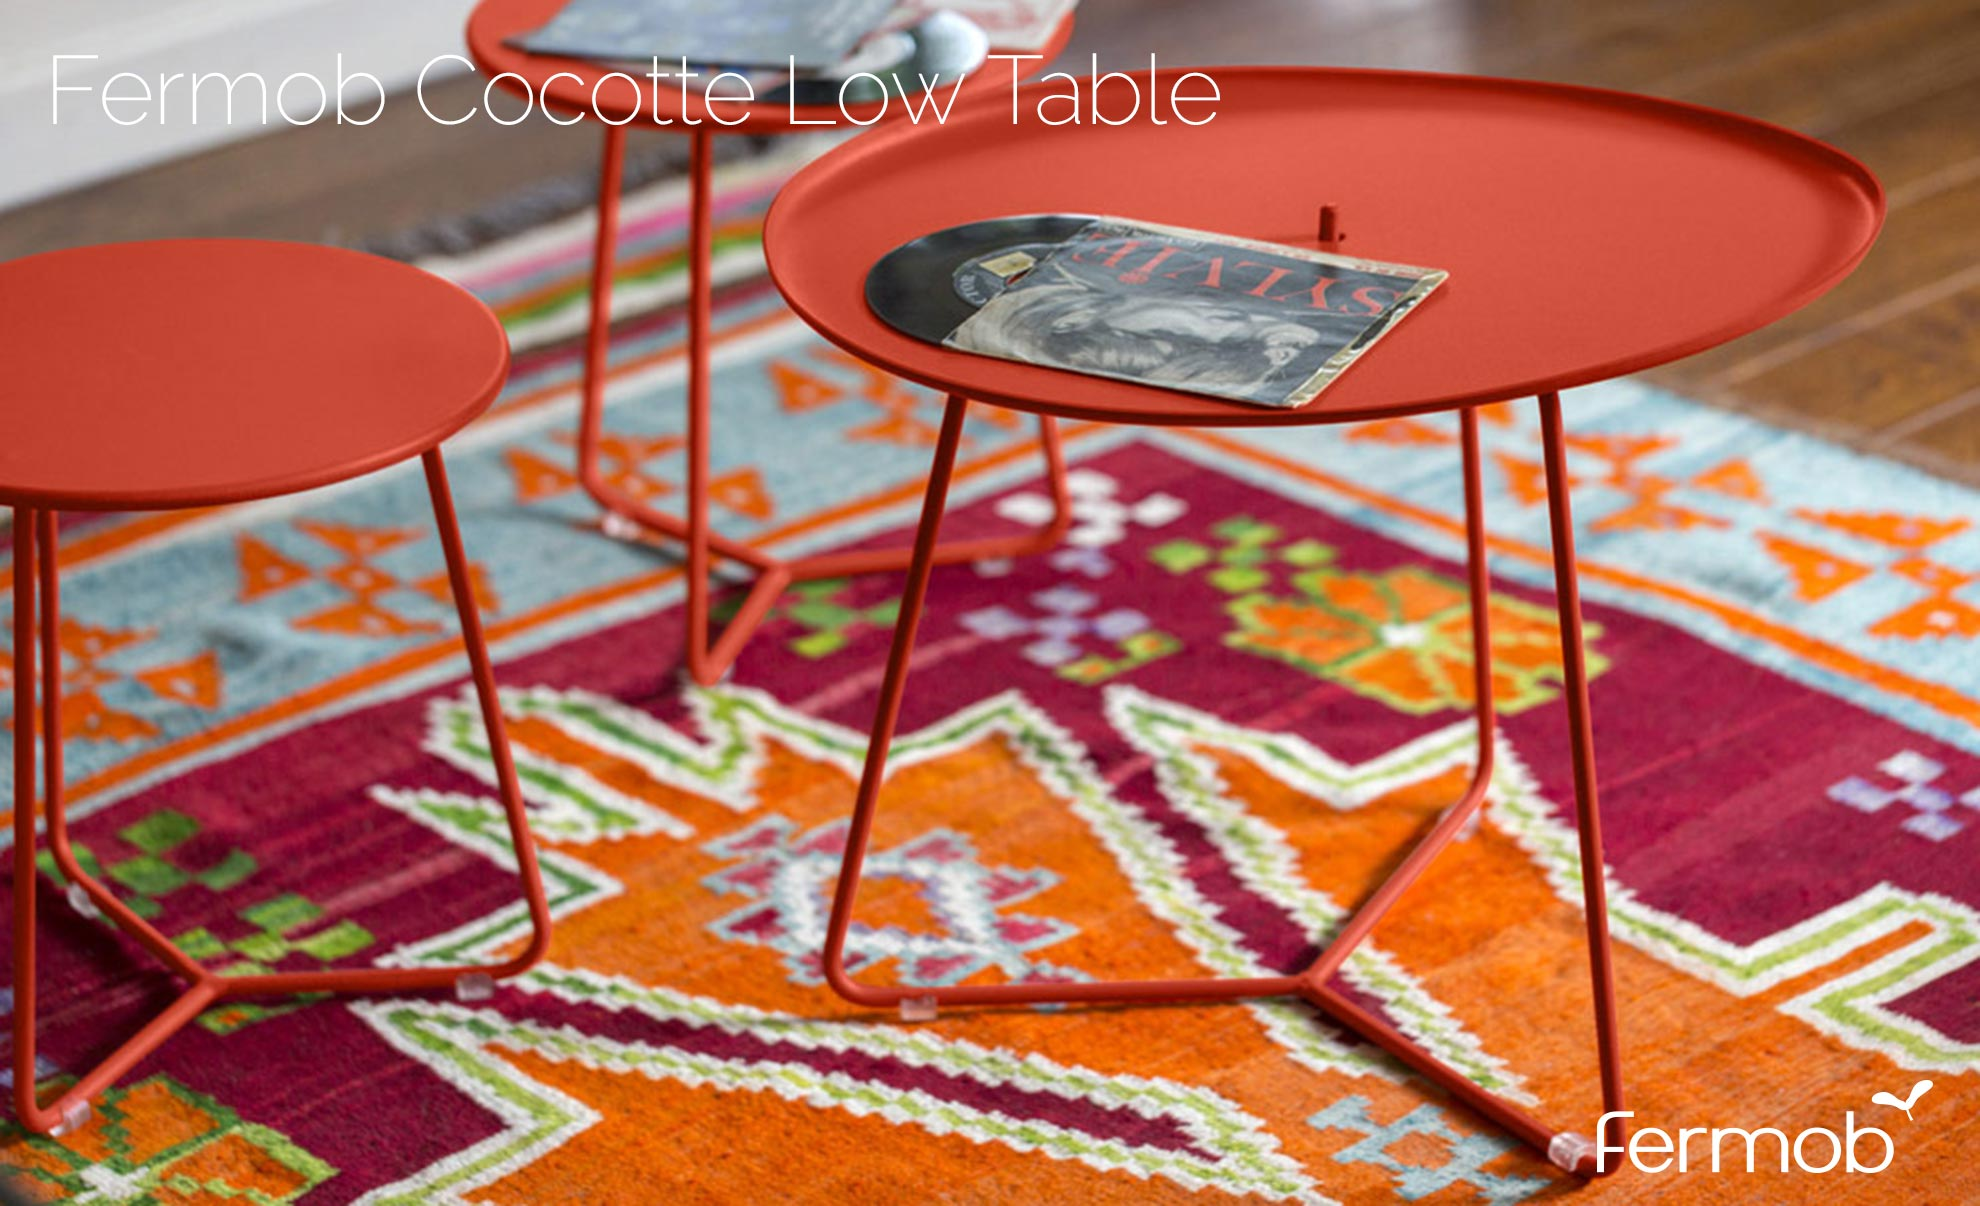 Fermob Cocotte Low Table